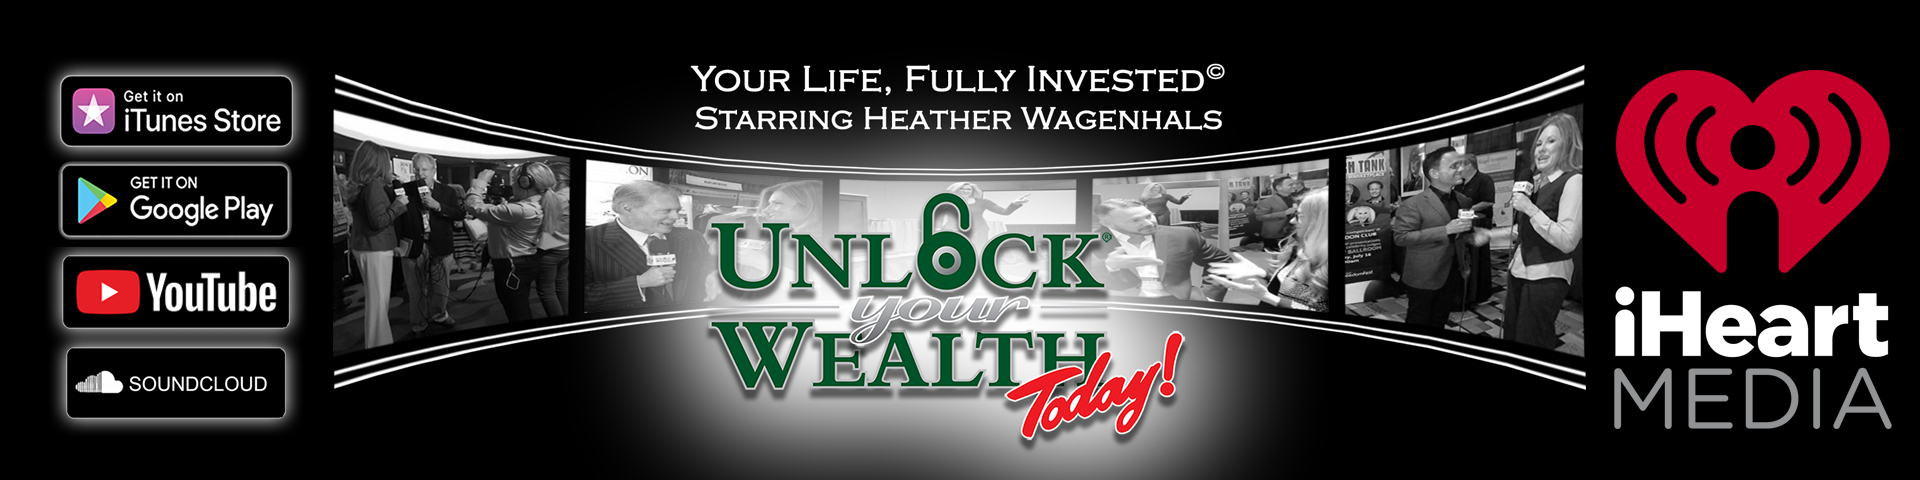 Money Millionaires Unlock Your Wealth Radio and TV - Get Your MoneyMind© Right Featuring Heather Wagenhals